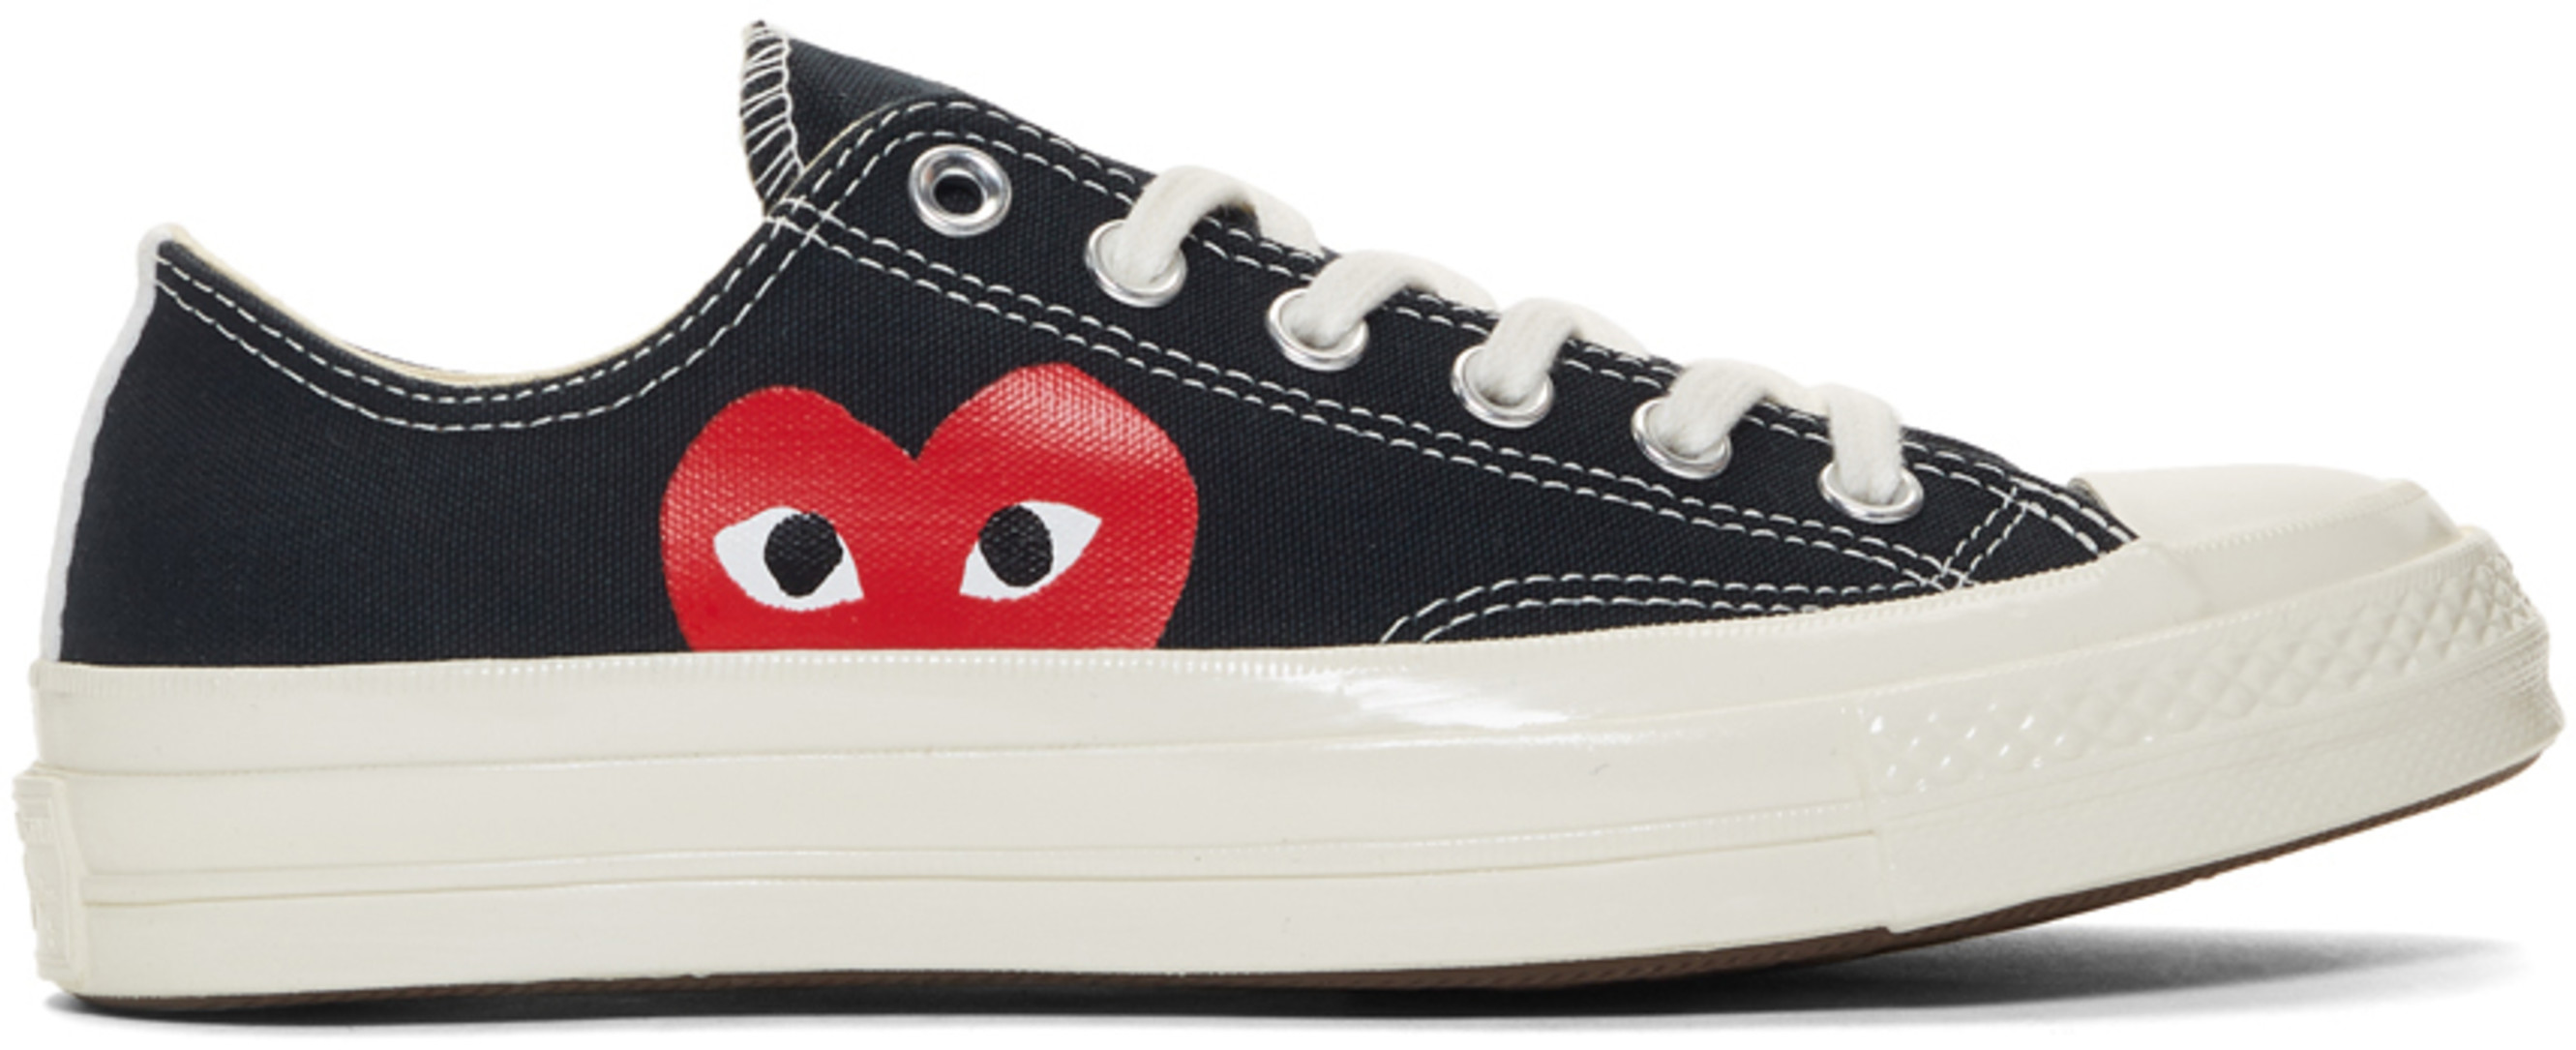 converse cdg homme blanche